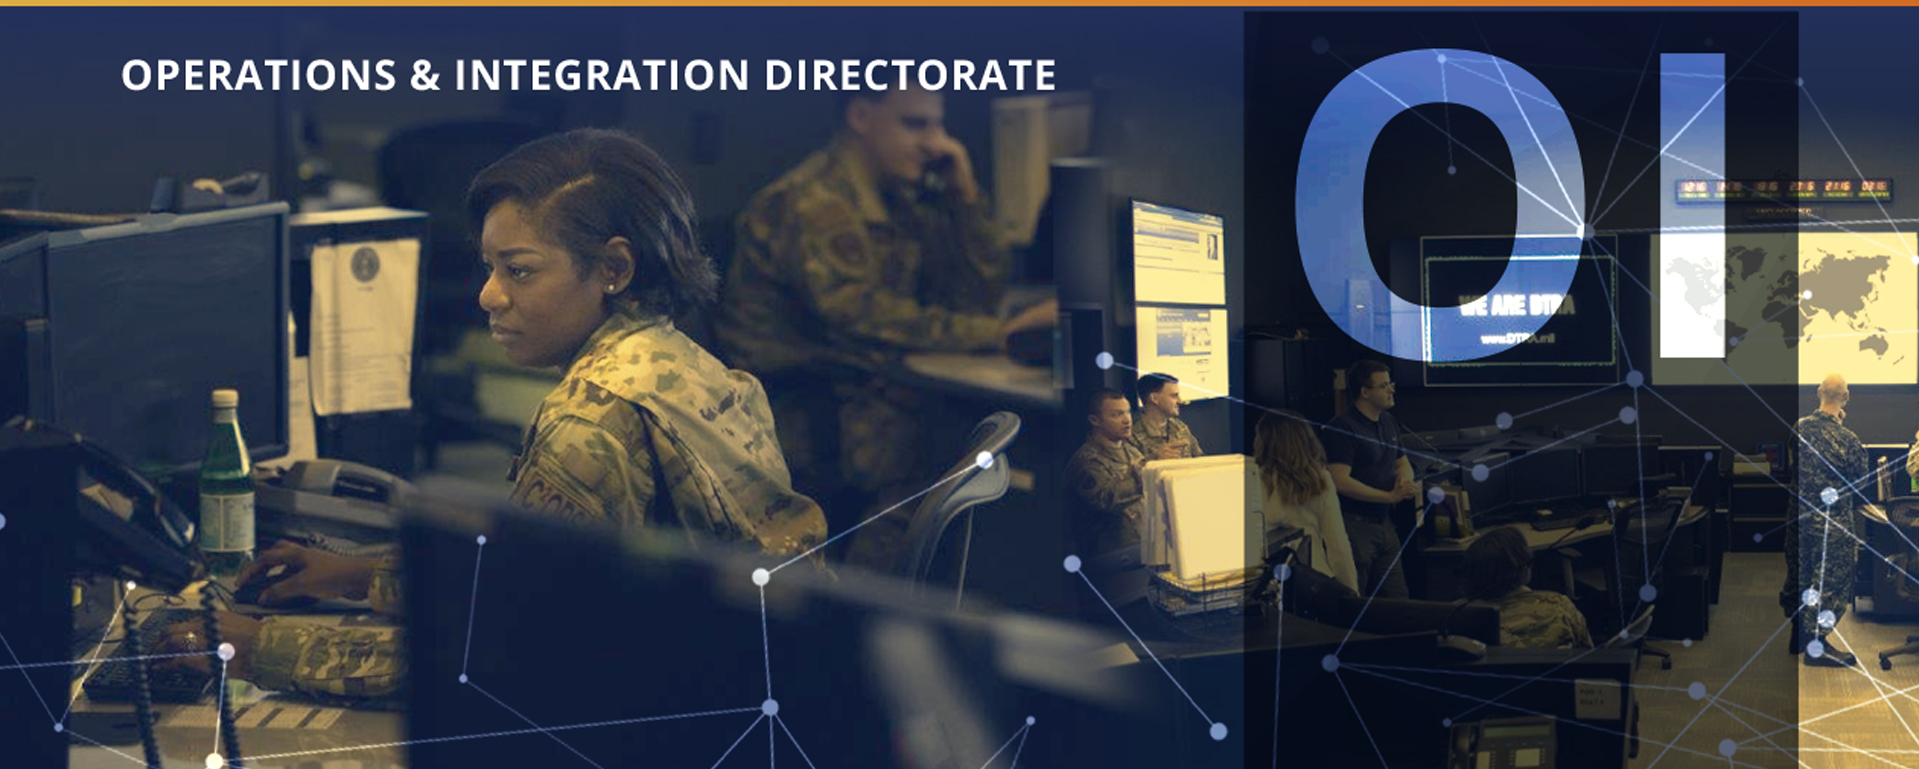 Operations and Integration Directorate